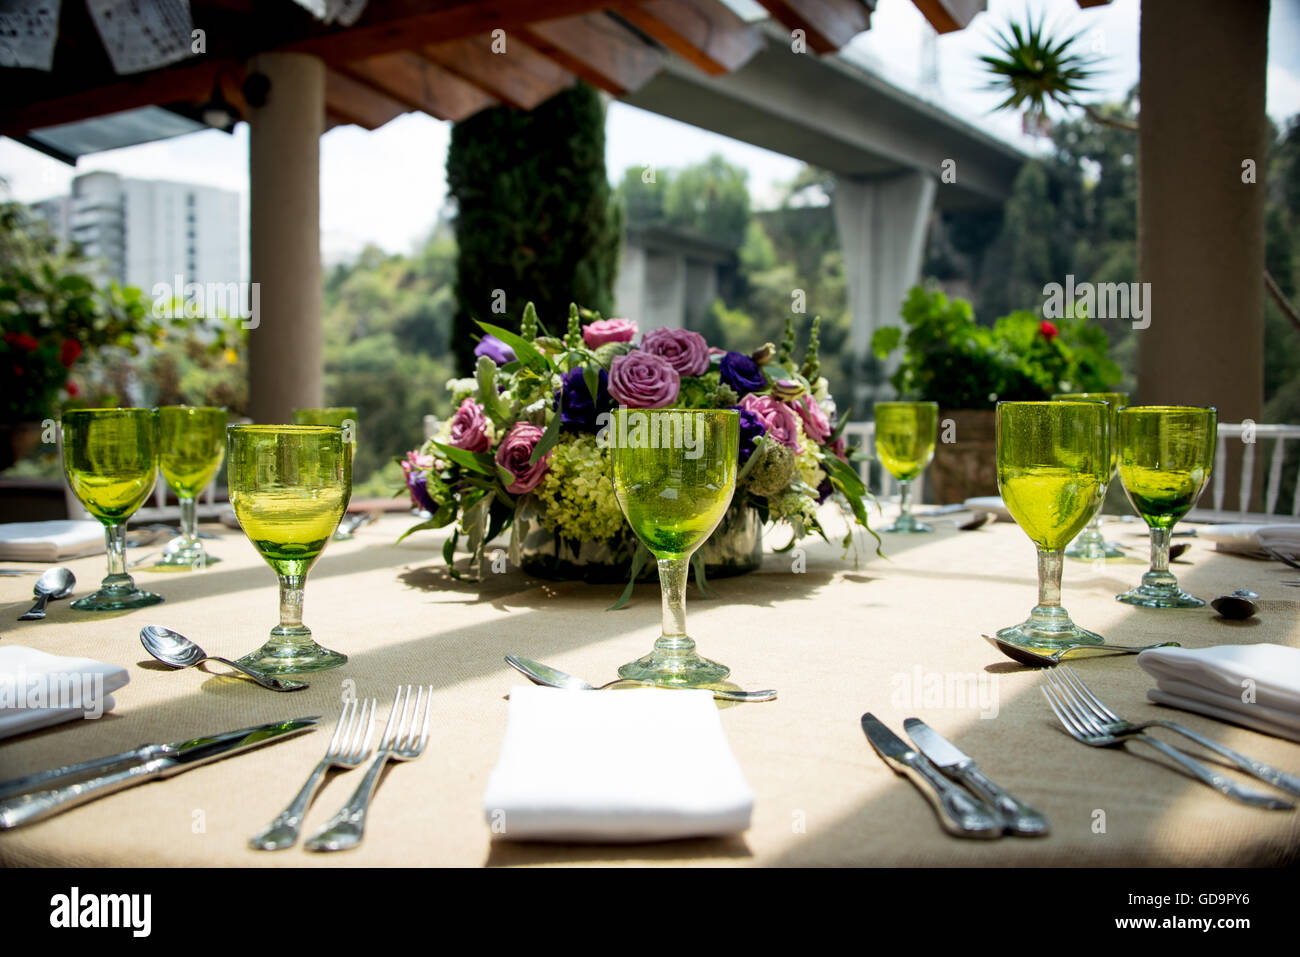 Stylish table setting for an open-air wedding with green wineglasses silverware and linen on a table on a sunny urban patio & Stylish table setting for an open-air wedding with green ...